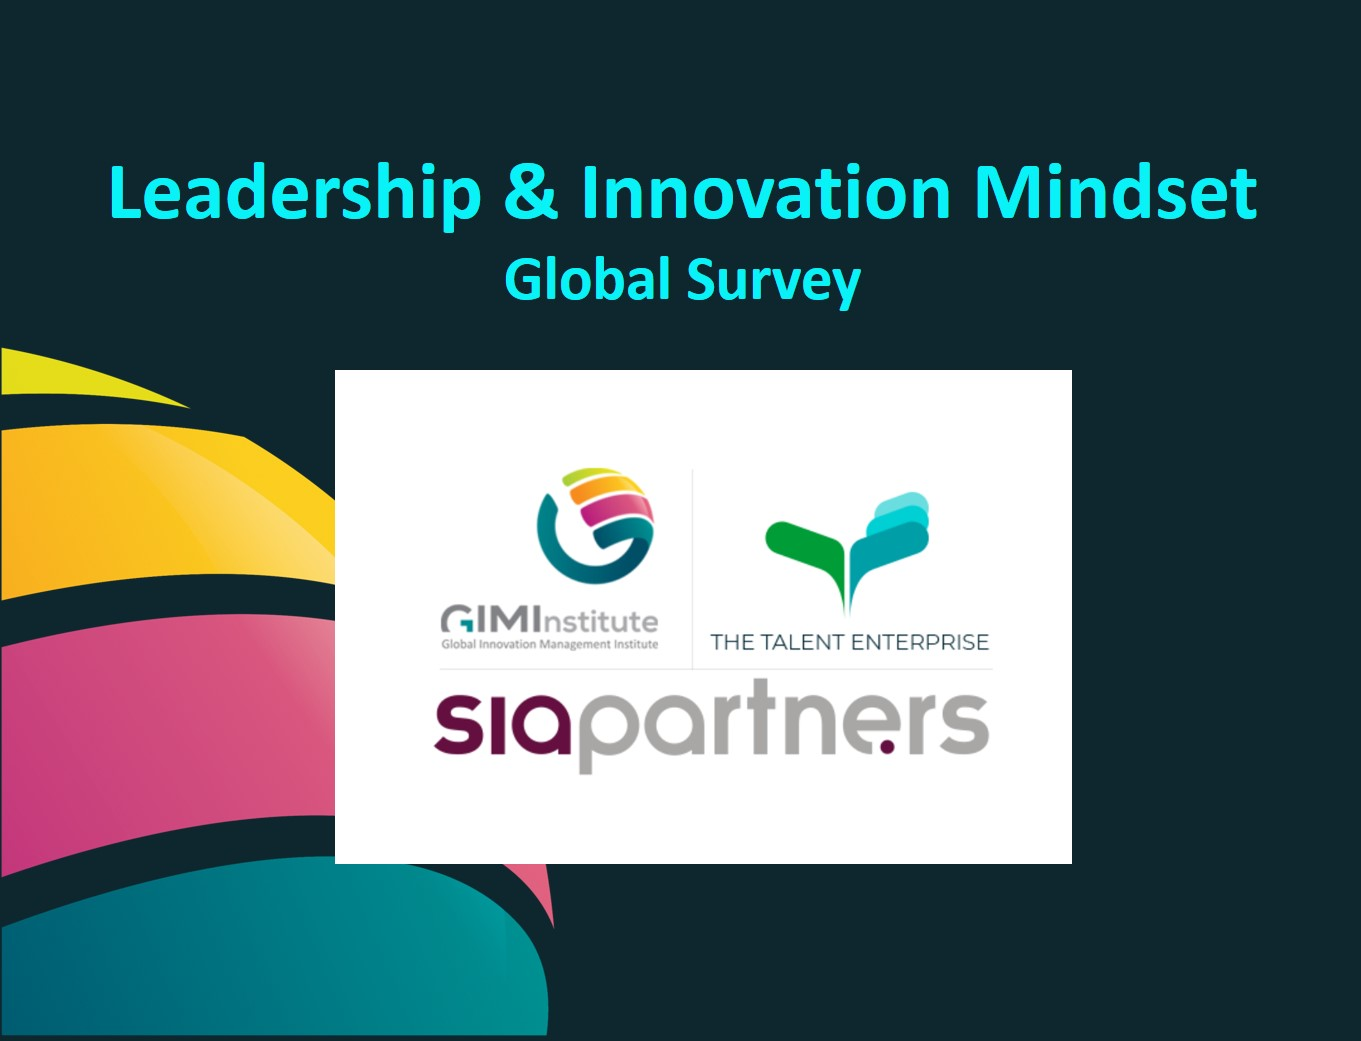 Leadership & Innovation Mindset - A Global Survey